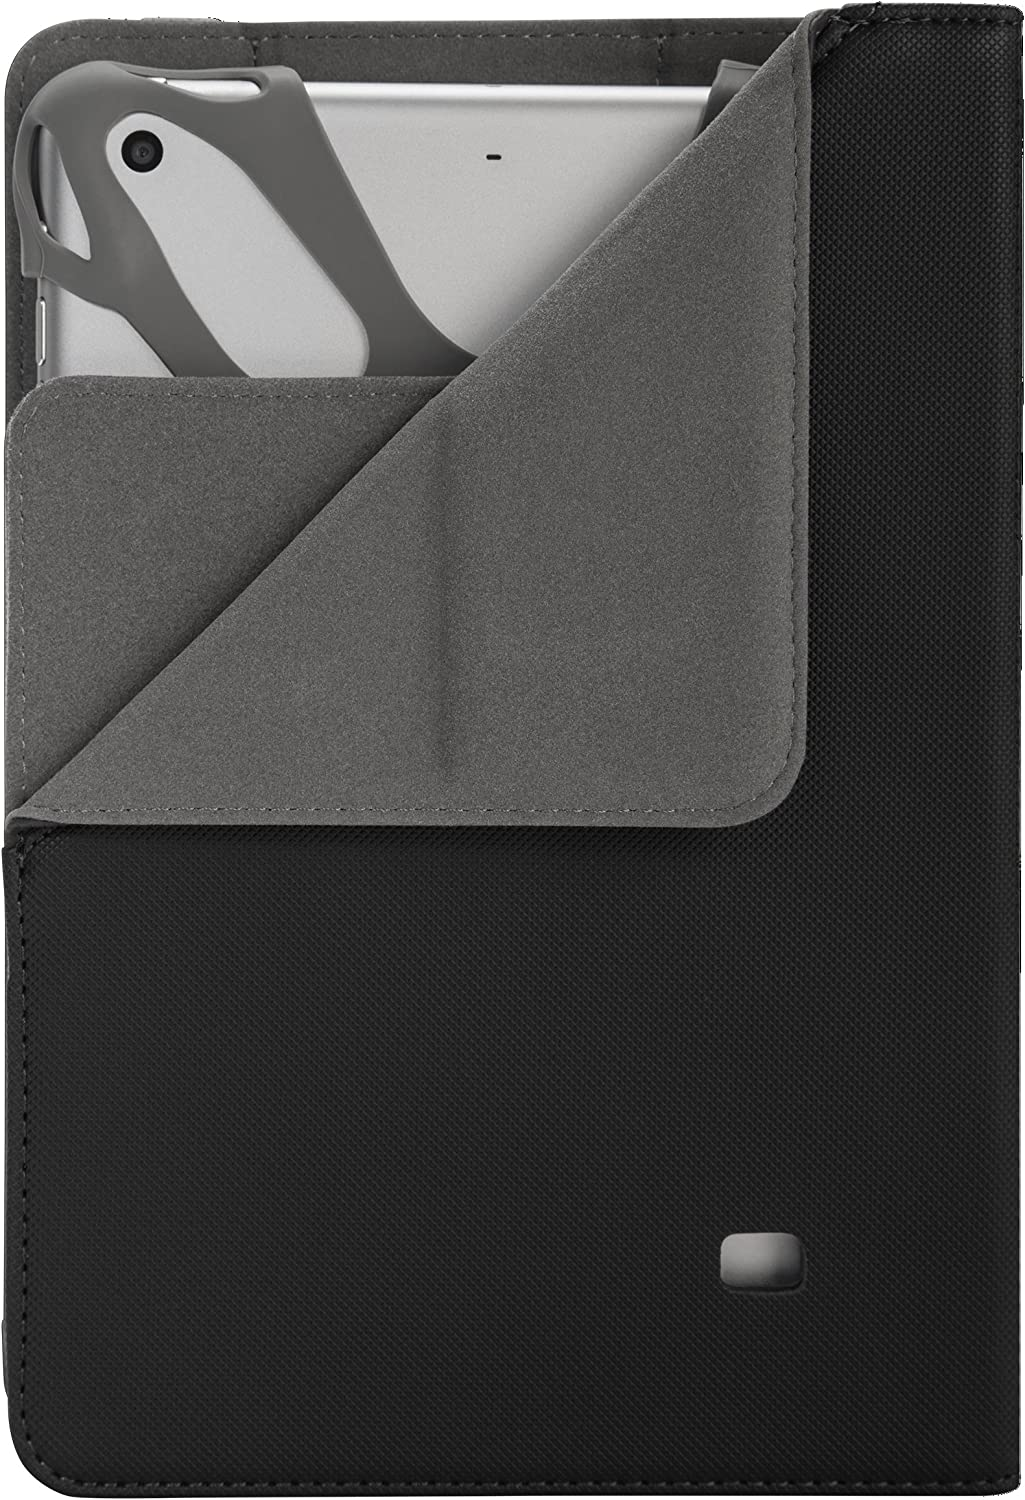 Replacement for PARTS-THZ589US 7-8 INCH FIT-N-Grip Universal CASE Black